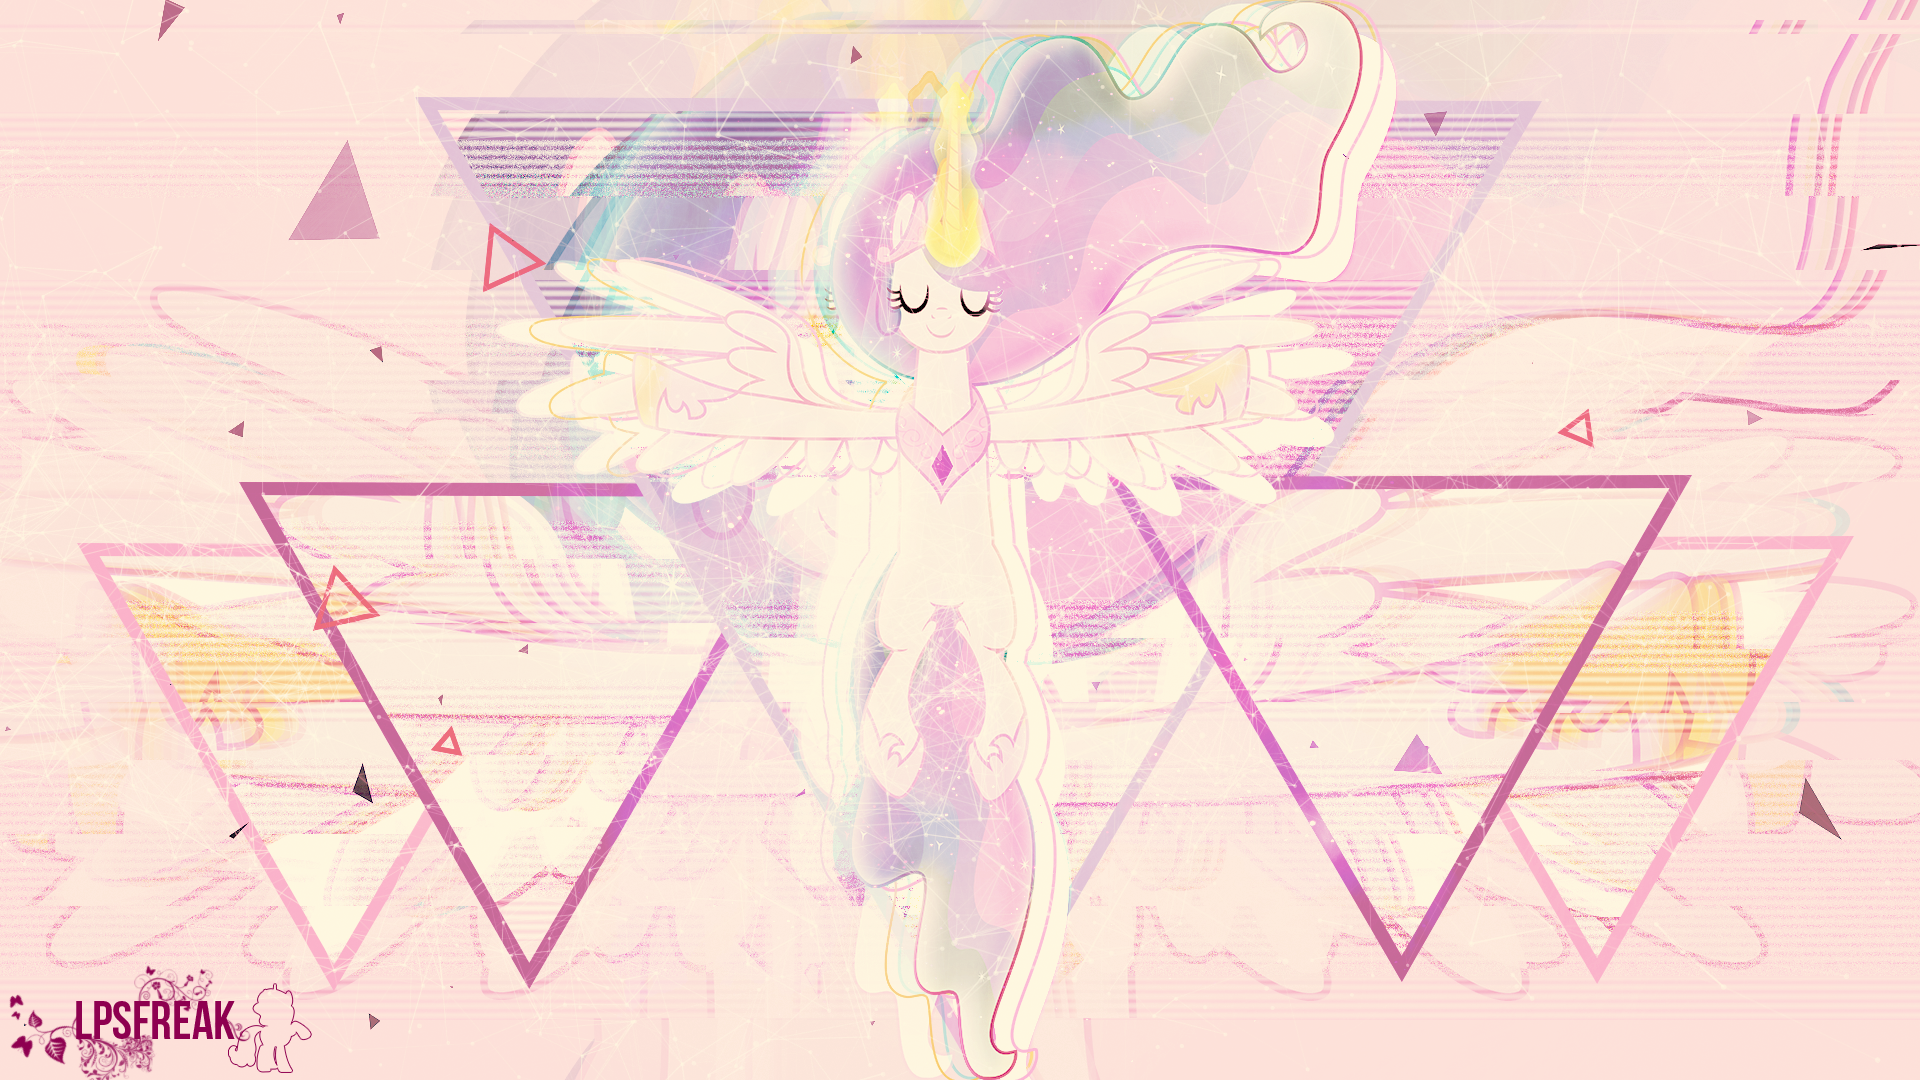 glitch celestia by LPSfreak